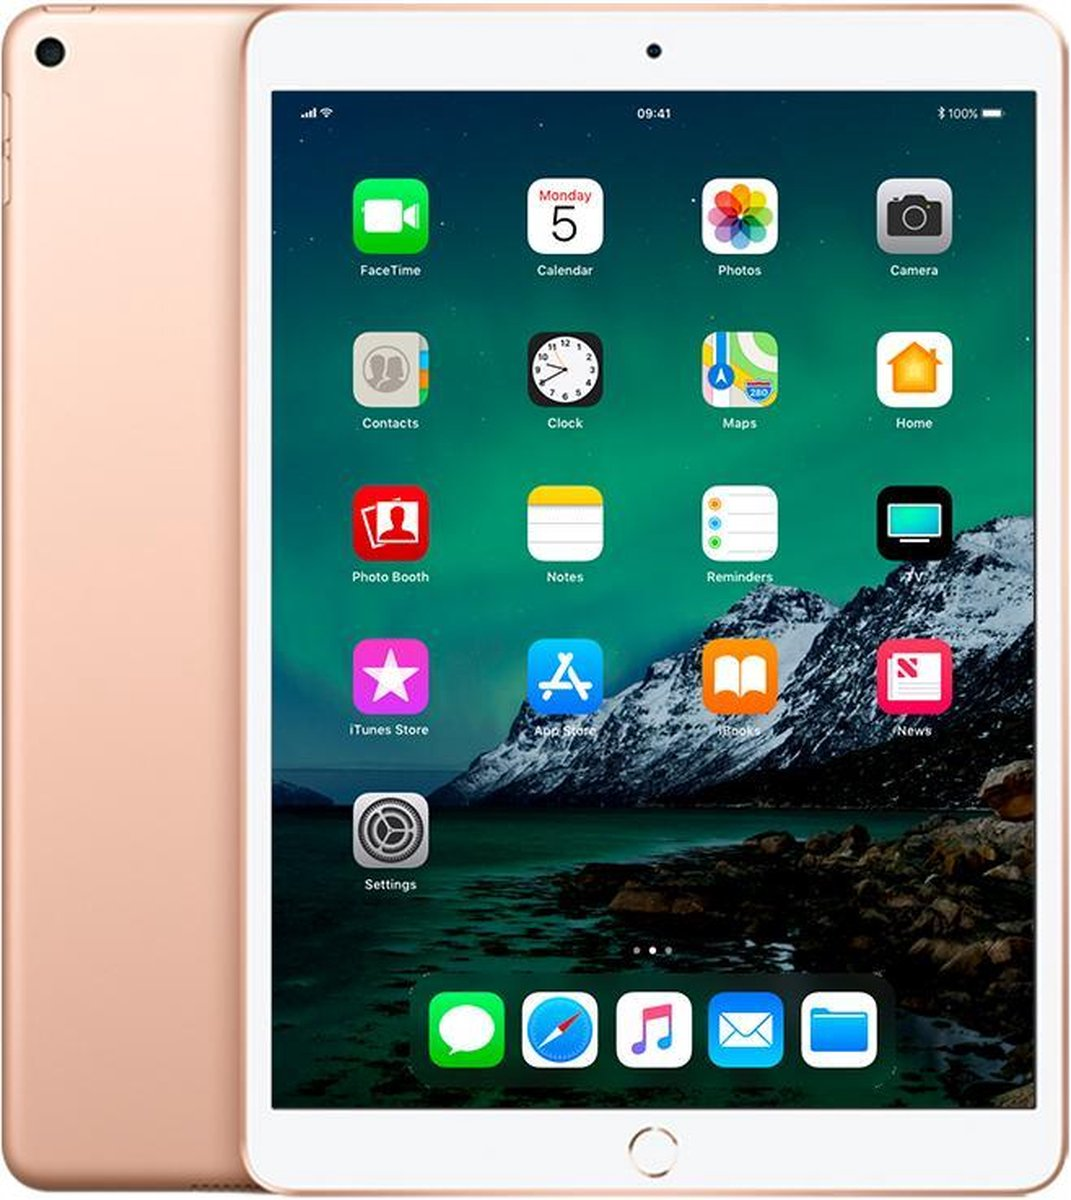 Apple iPad Air 3 - 64GB - Wi-Fi - Goud - B-grade